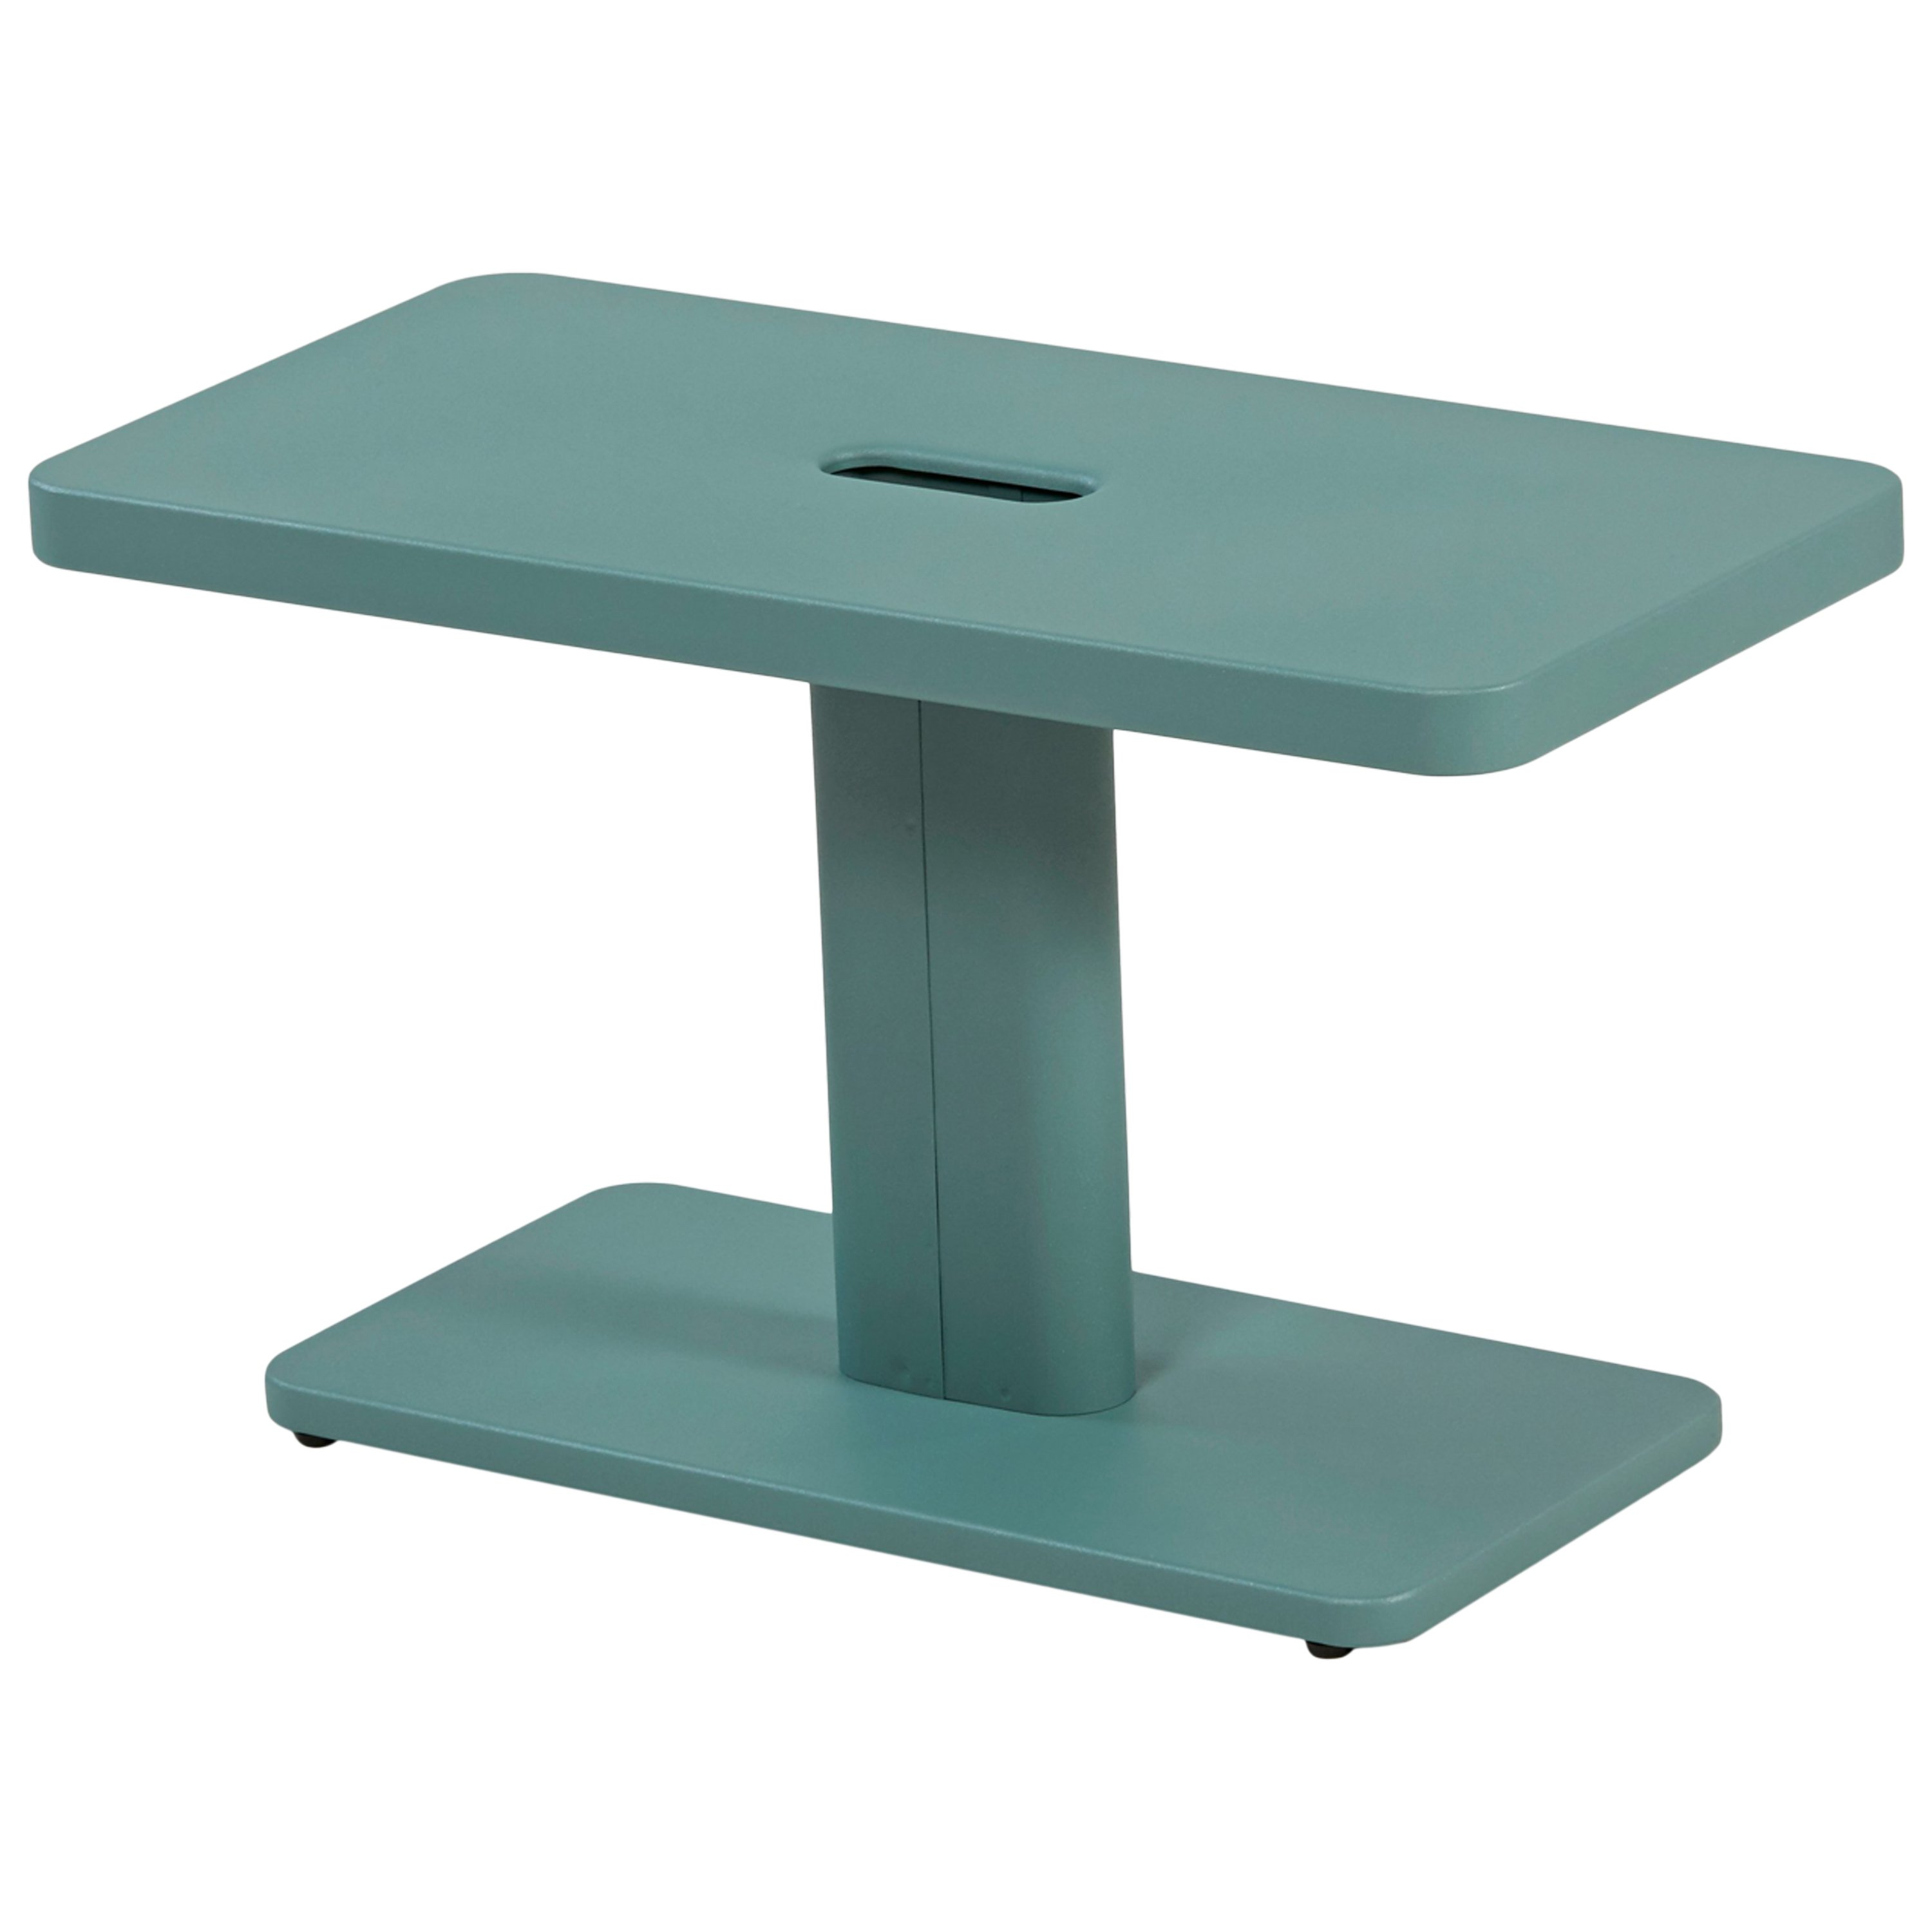 azur outdoor side table sage green frederic gaunet and tolix metal for small folding patio ikea childrens storage units solid pine coffee teak garden furniture pottery barn high